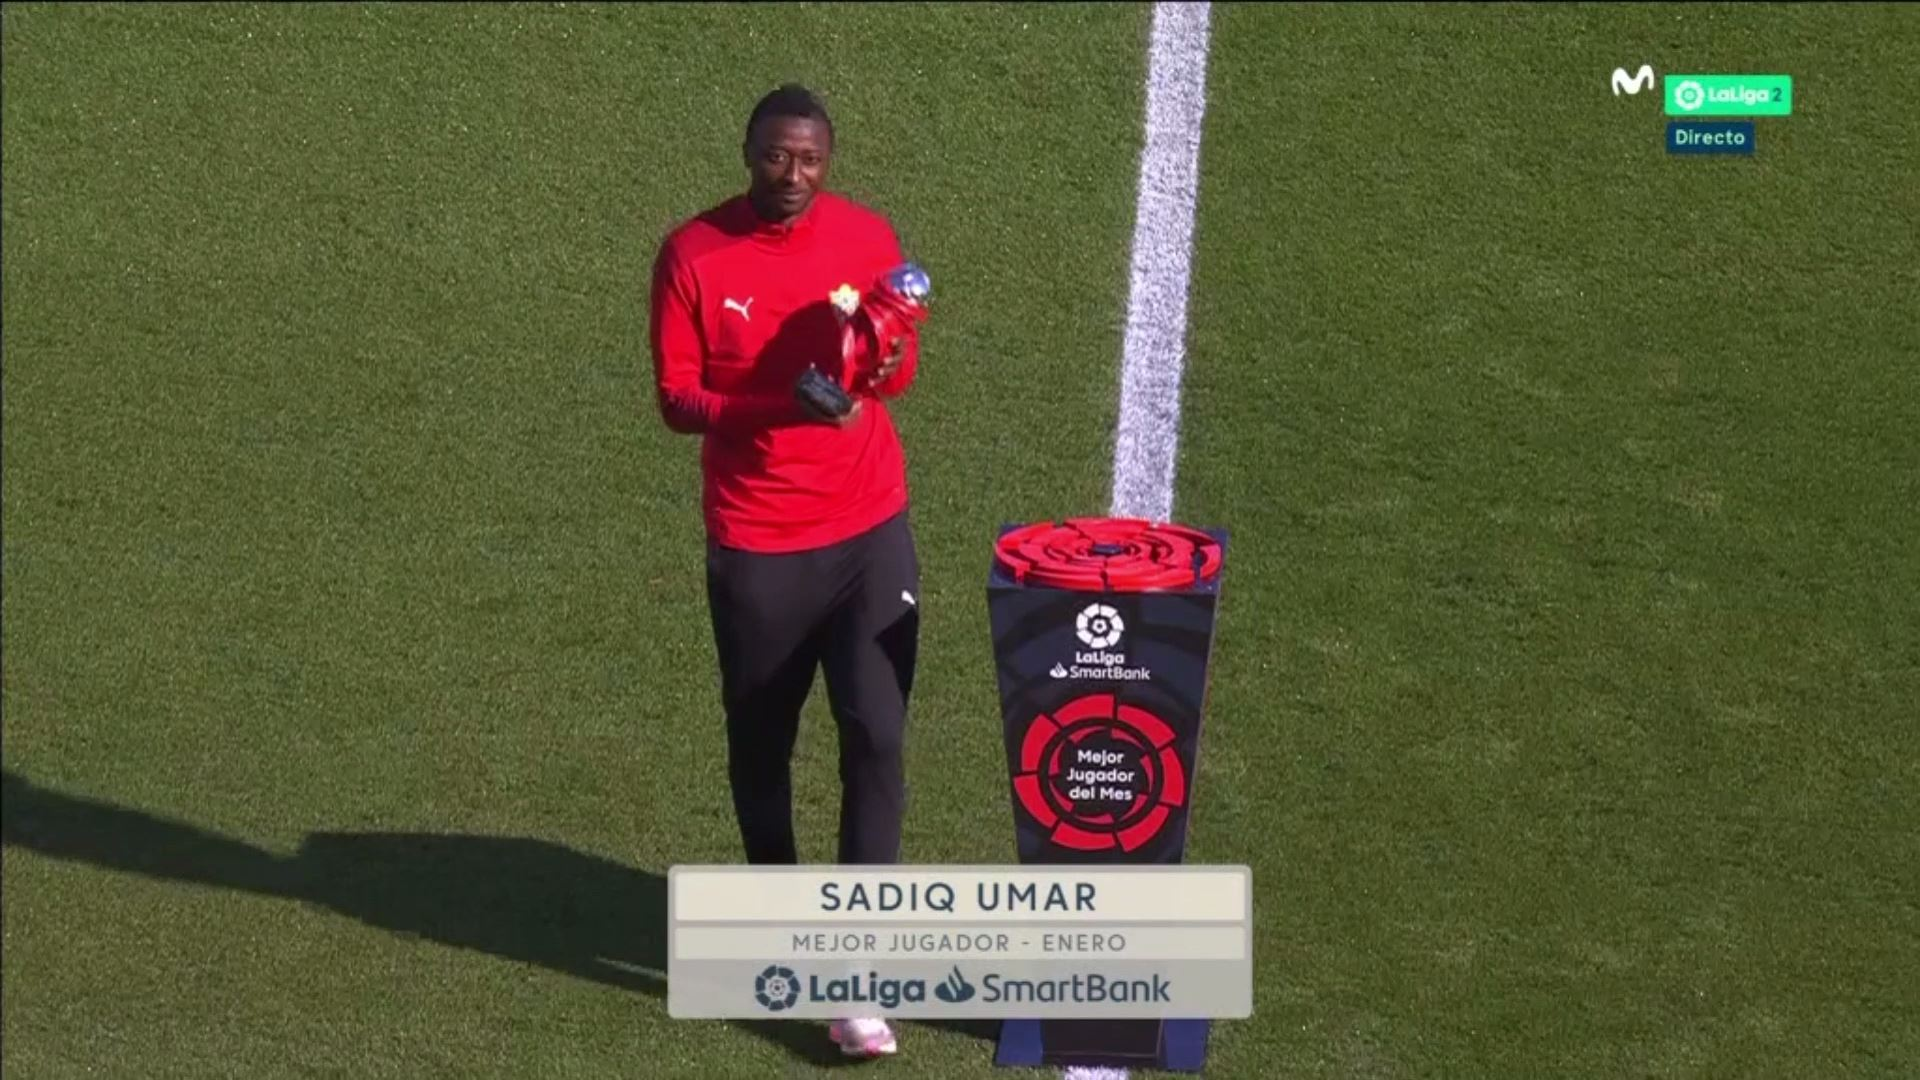 Sadiq Collects LaLiga SmartBank's January Player of the Month